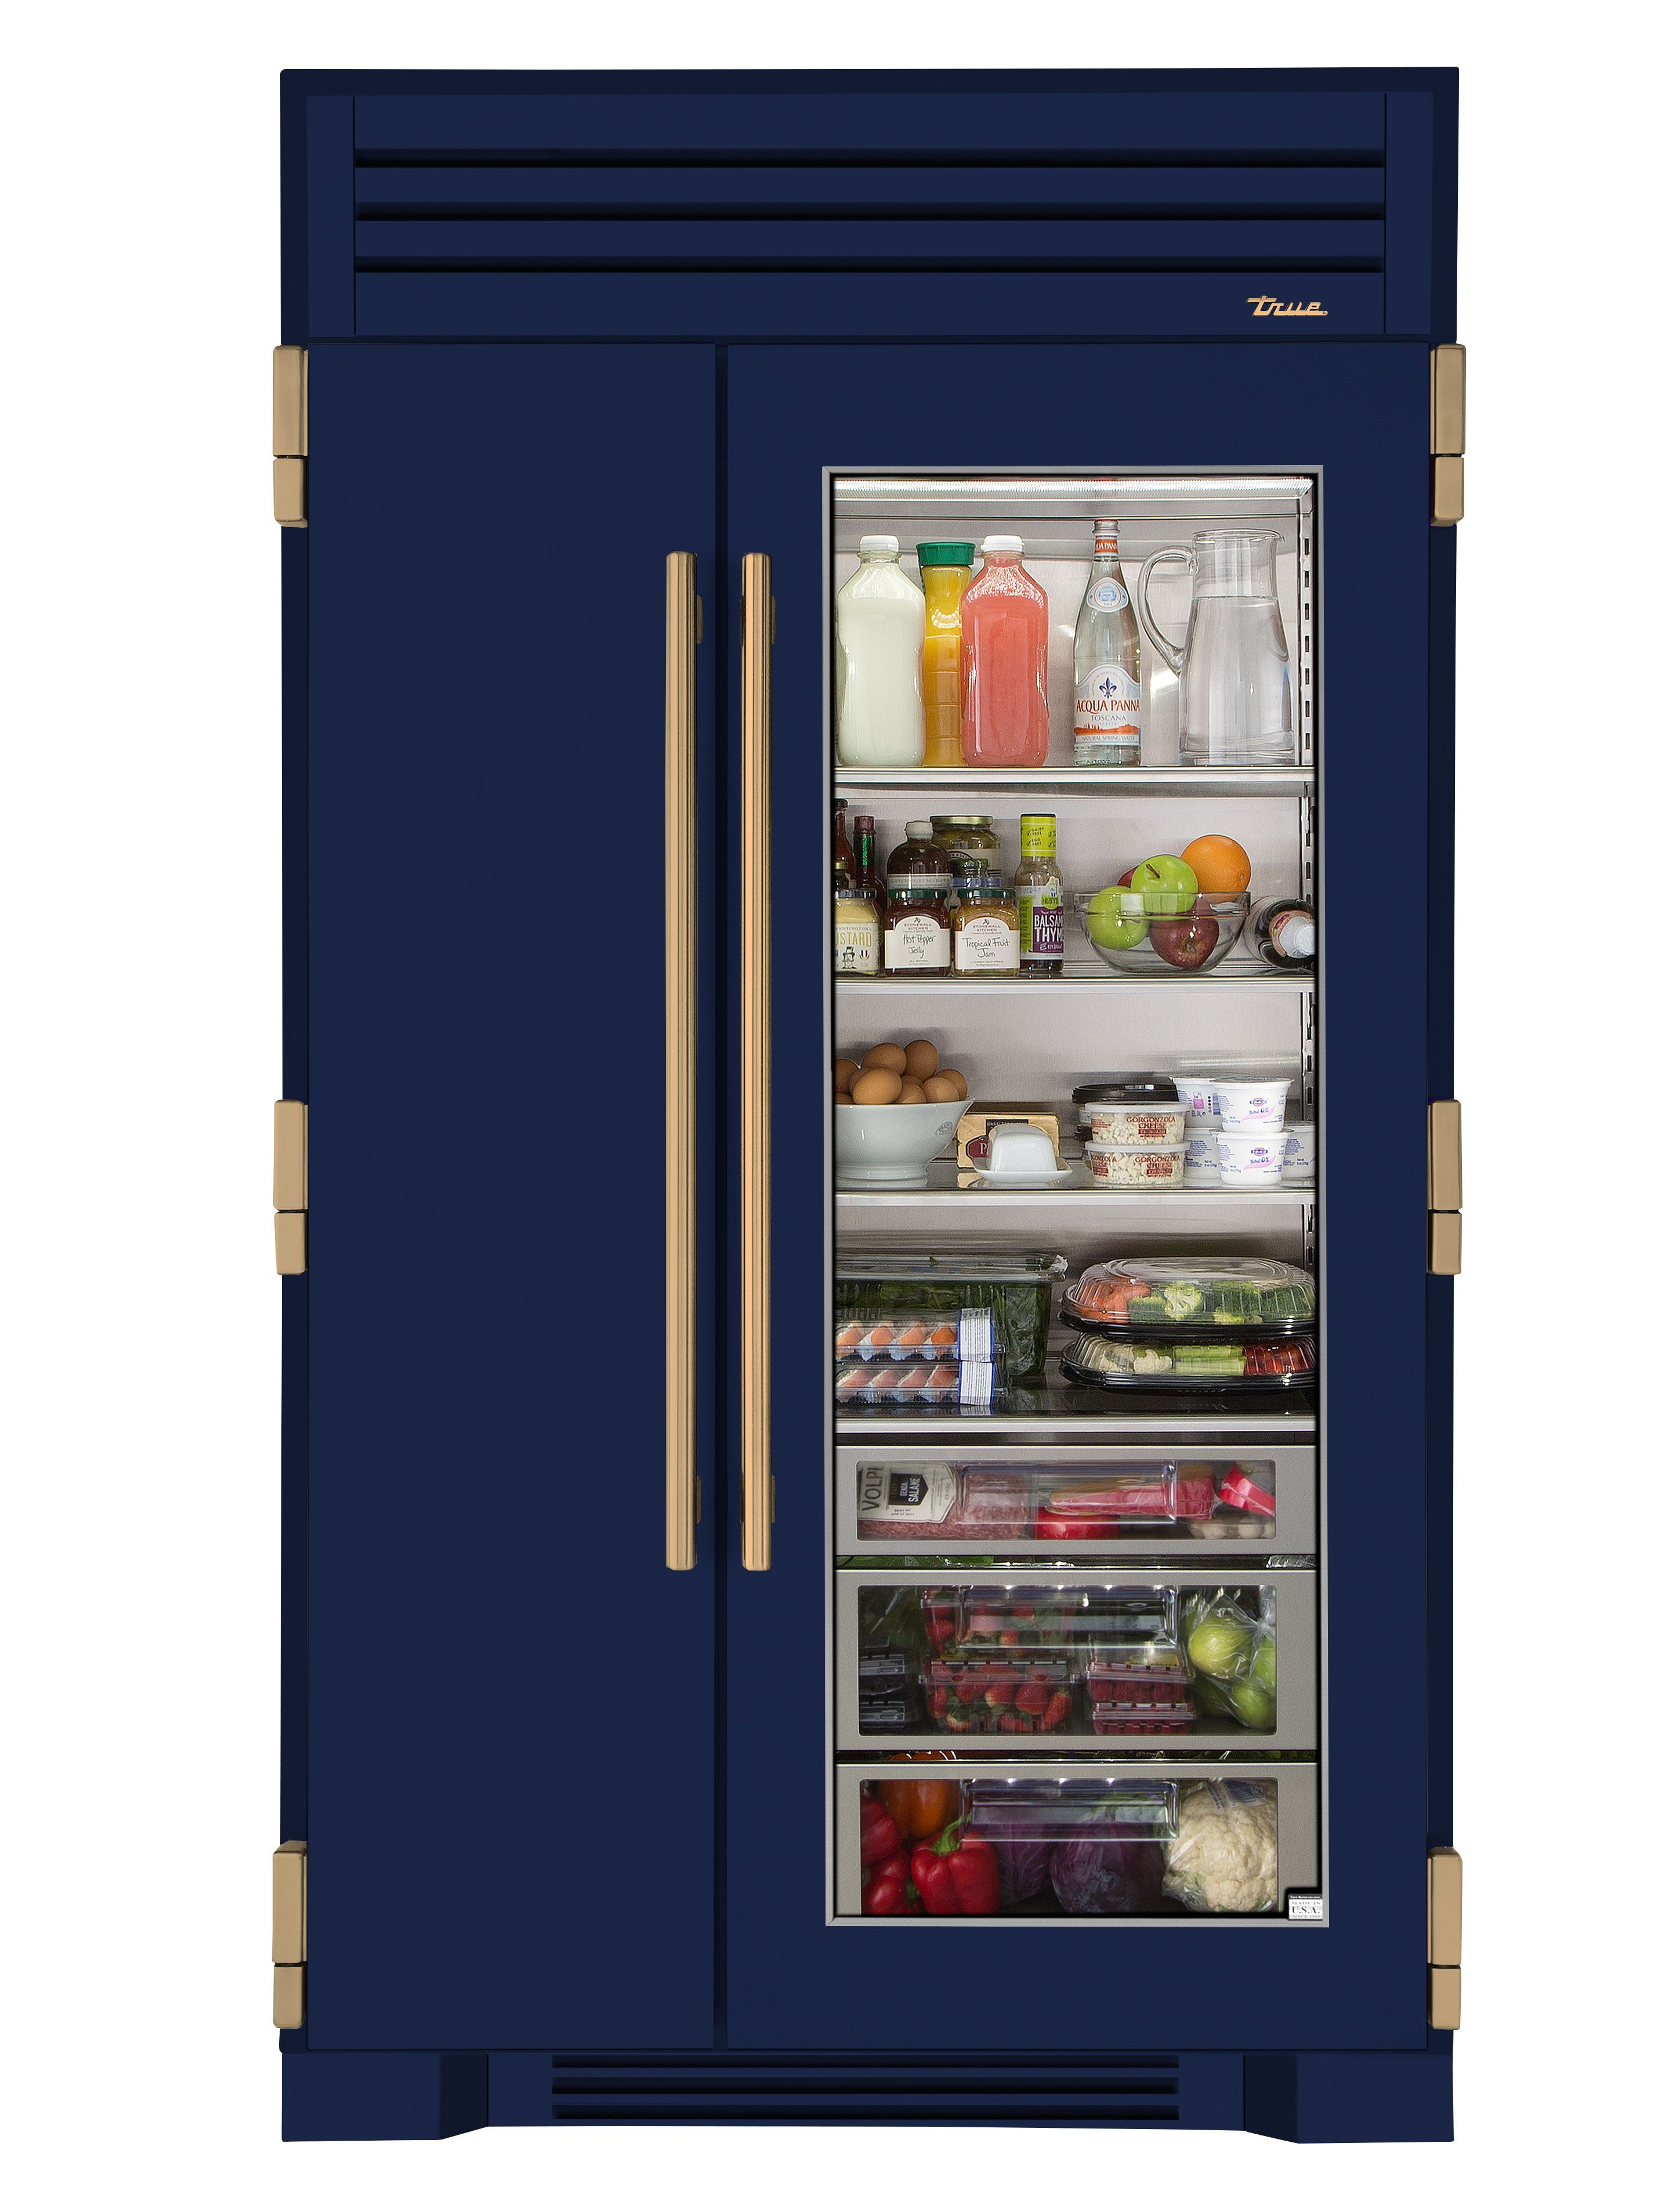 True Residential Recently Introduced A Variety Of New Options And Products To Its Offerings Including A Glass Door Fridge Glass Door Refrigerator Glass Fridge